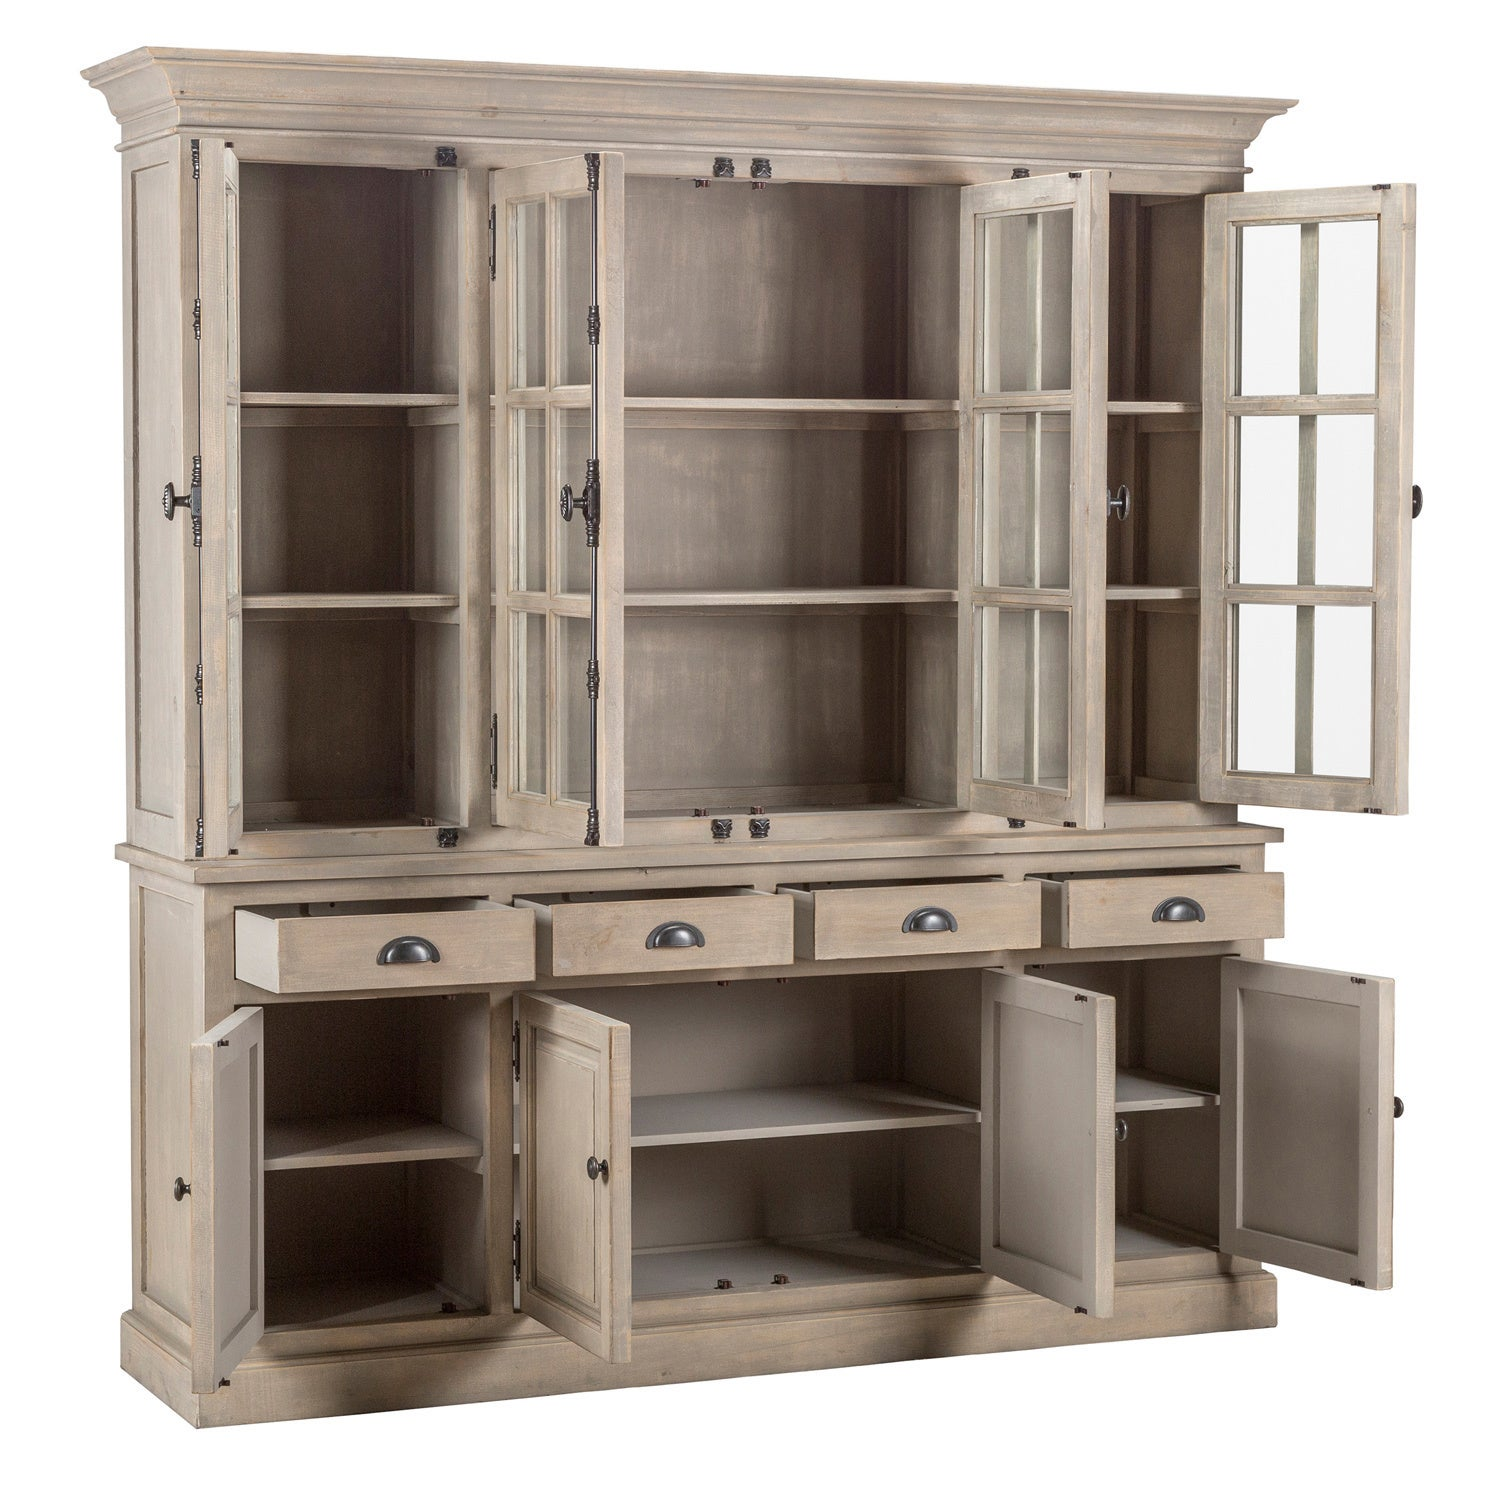 Delicieux Shop Wilson Reclaimed Wood 82 Inch China Cabinet By Kosas Home   Free  Shipping Today   Overstock.com   7986200